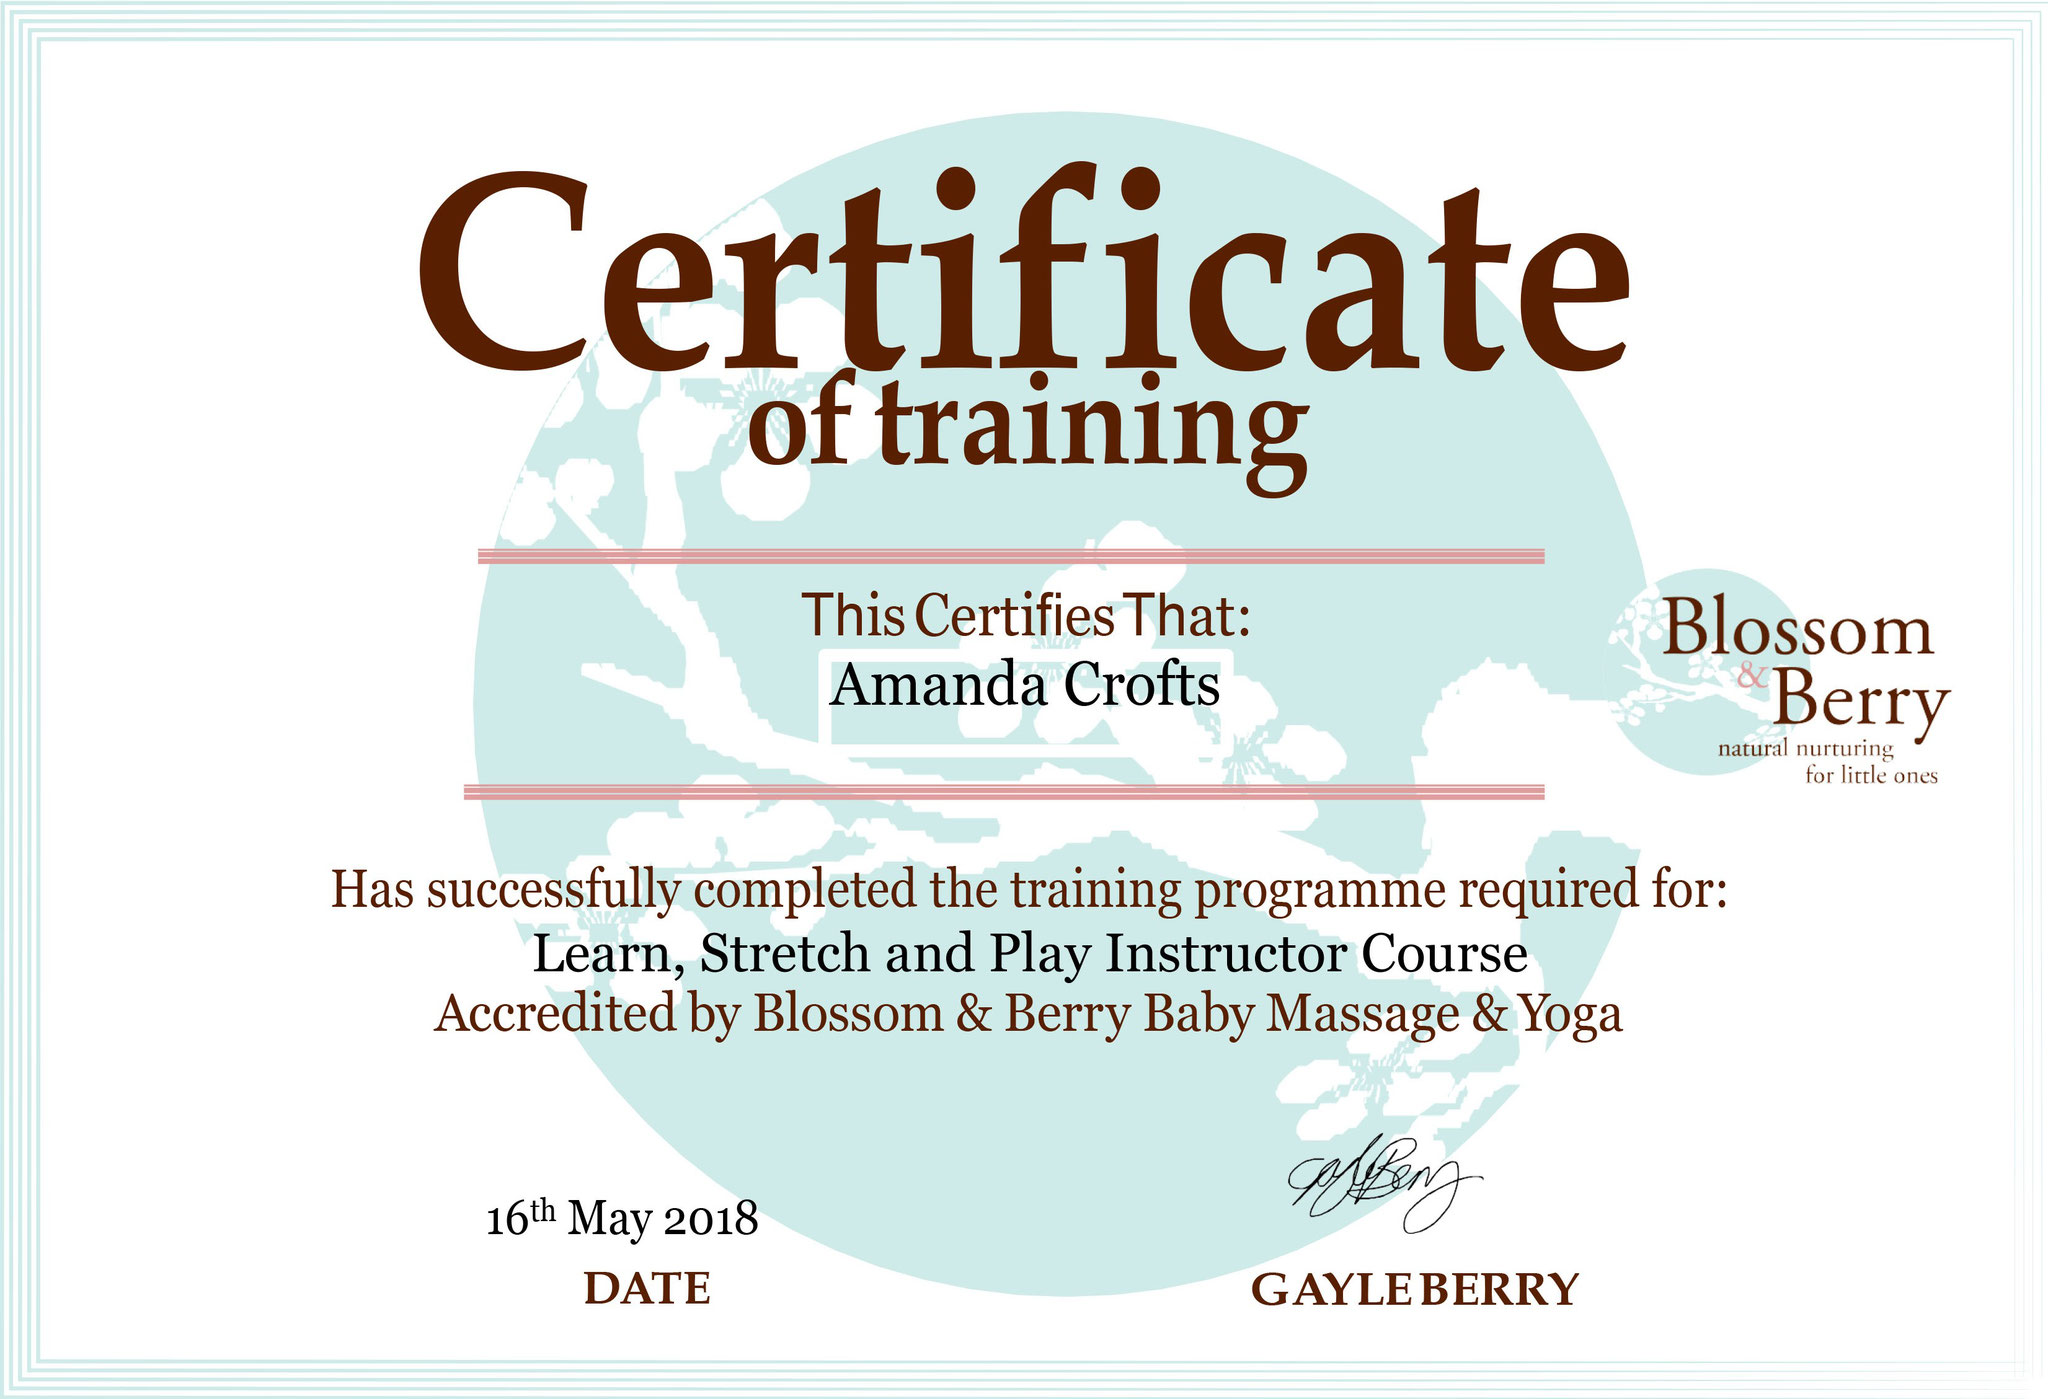 Blossom & Berry Learn Stretch & Play Certificate